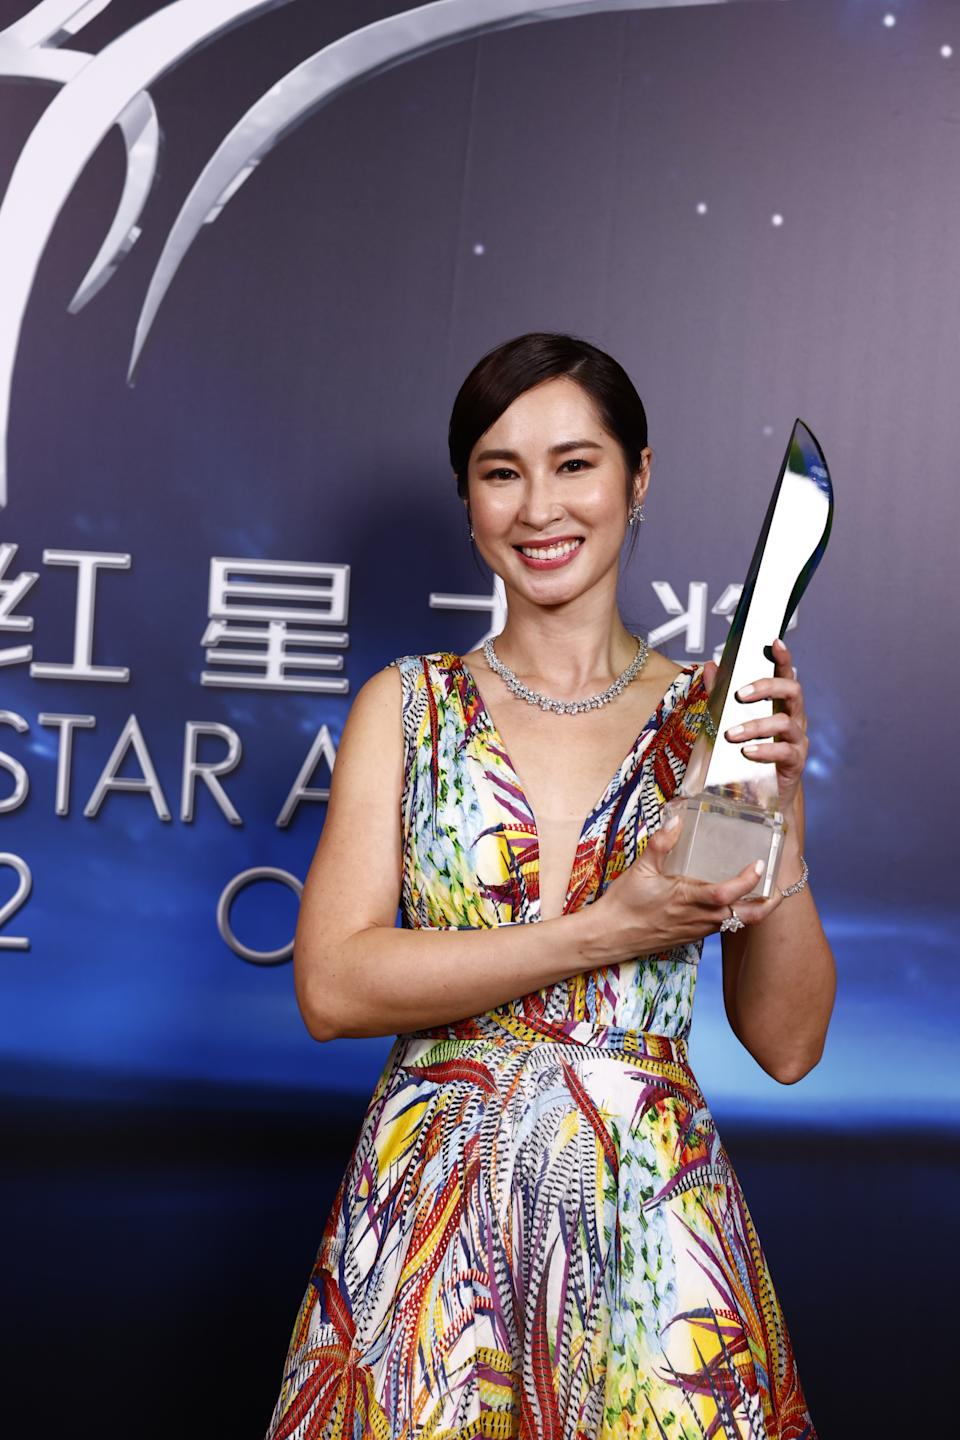 Paige Chua at Star Awards held at Changi Airport on 18 April 2021. (Photo: Mediacorp)